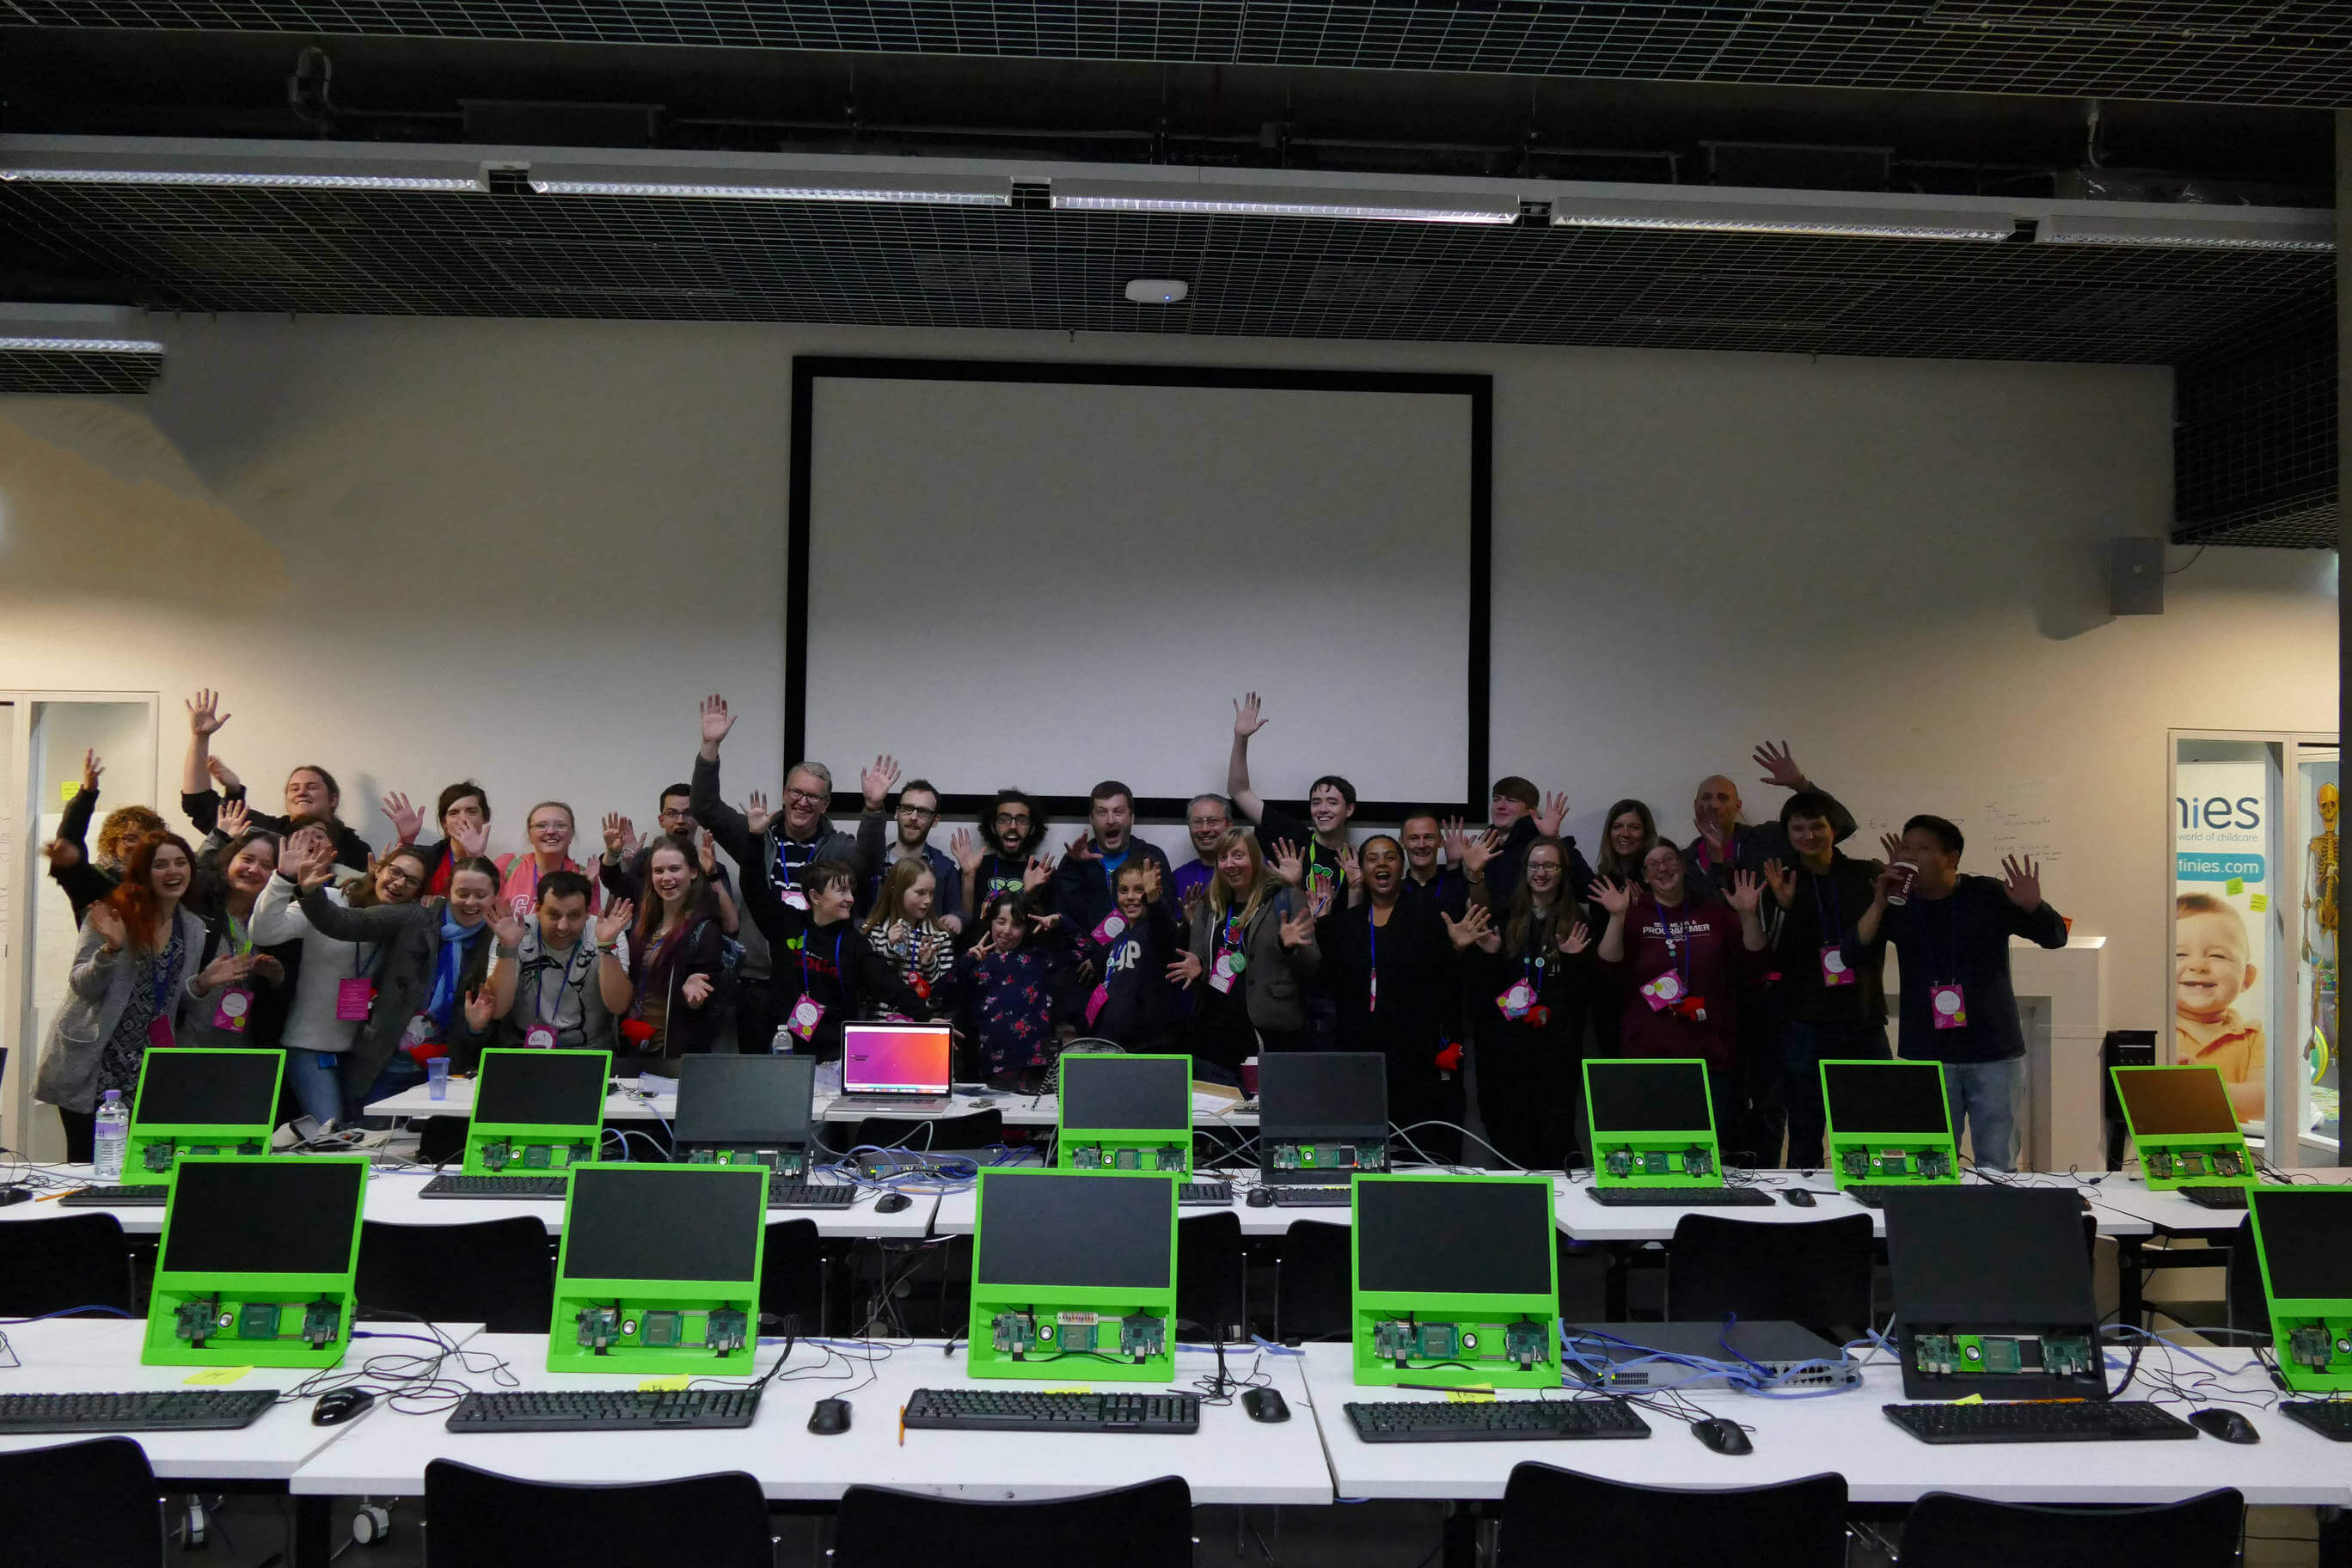 The session leaders and helpers of the Youth Zone at MozFest 2016